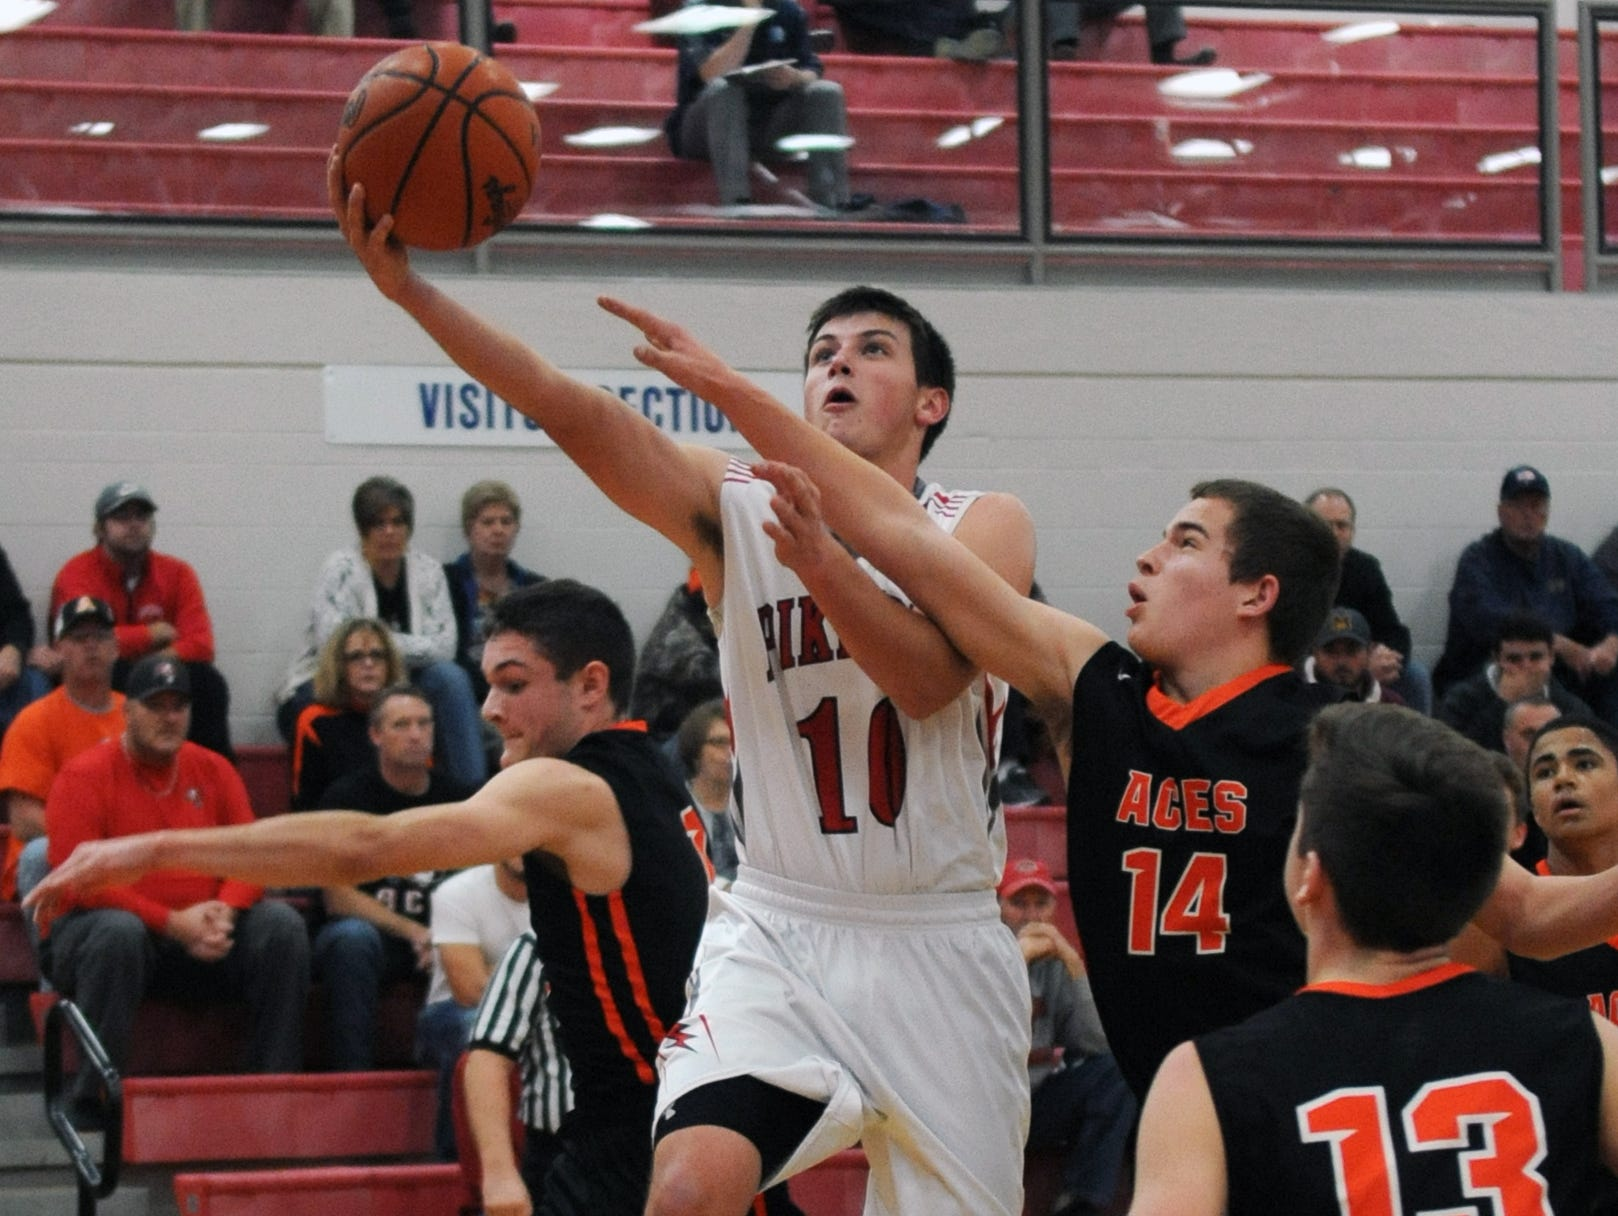 Piketon's Casey Moore jumps up for a shot against Amanda-Clearcreek Friday at Zane Trace High School.